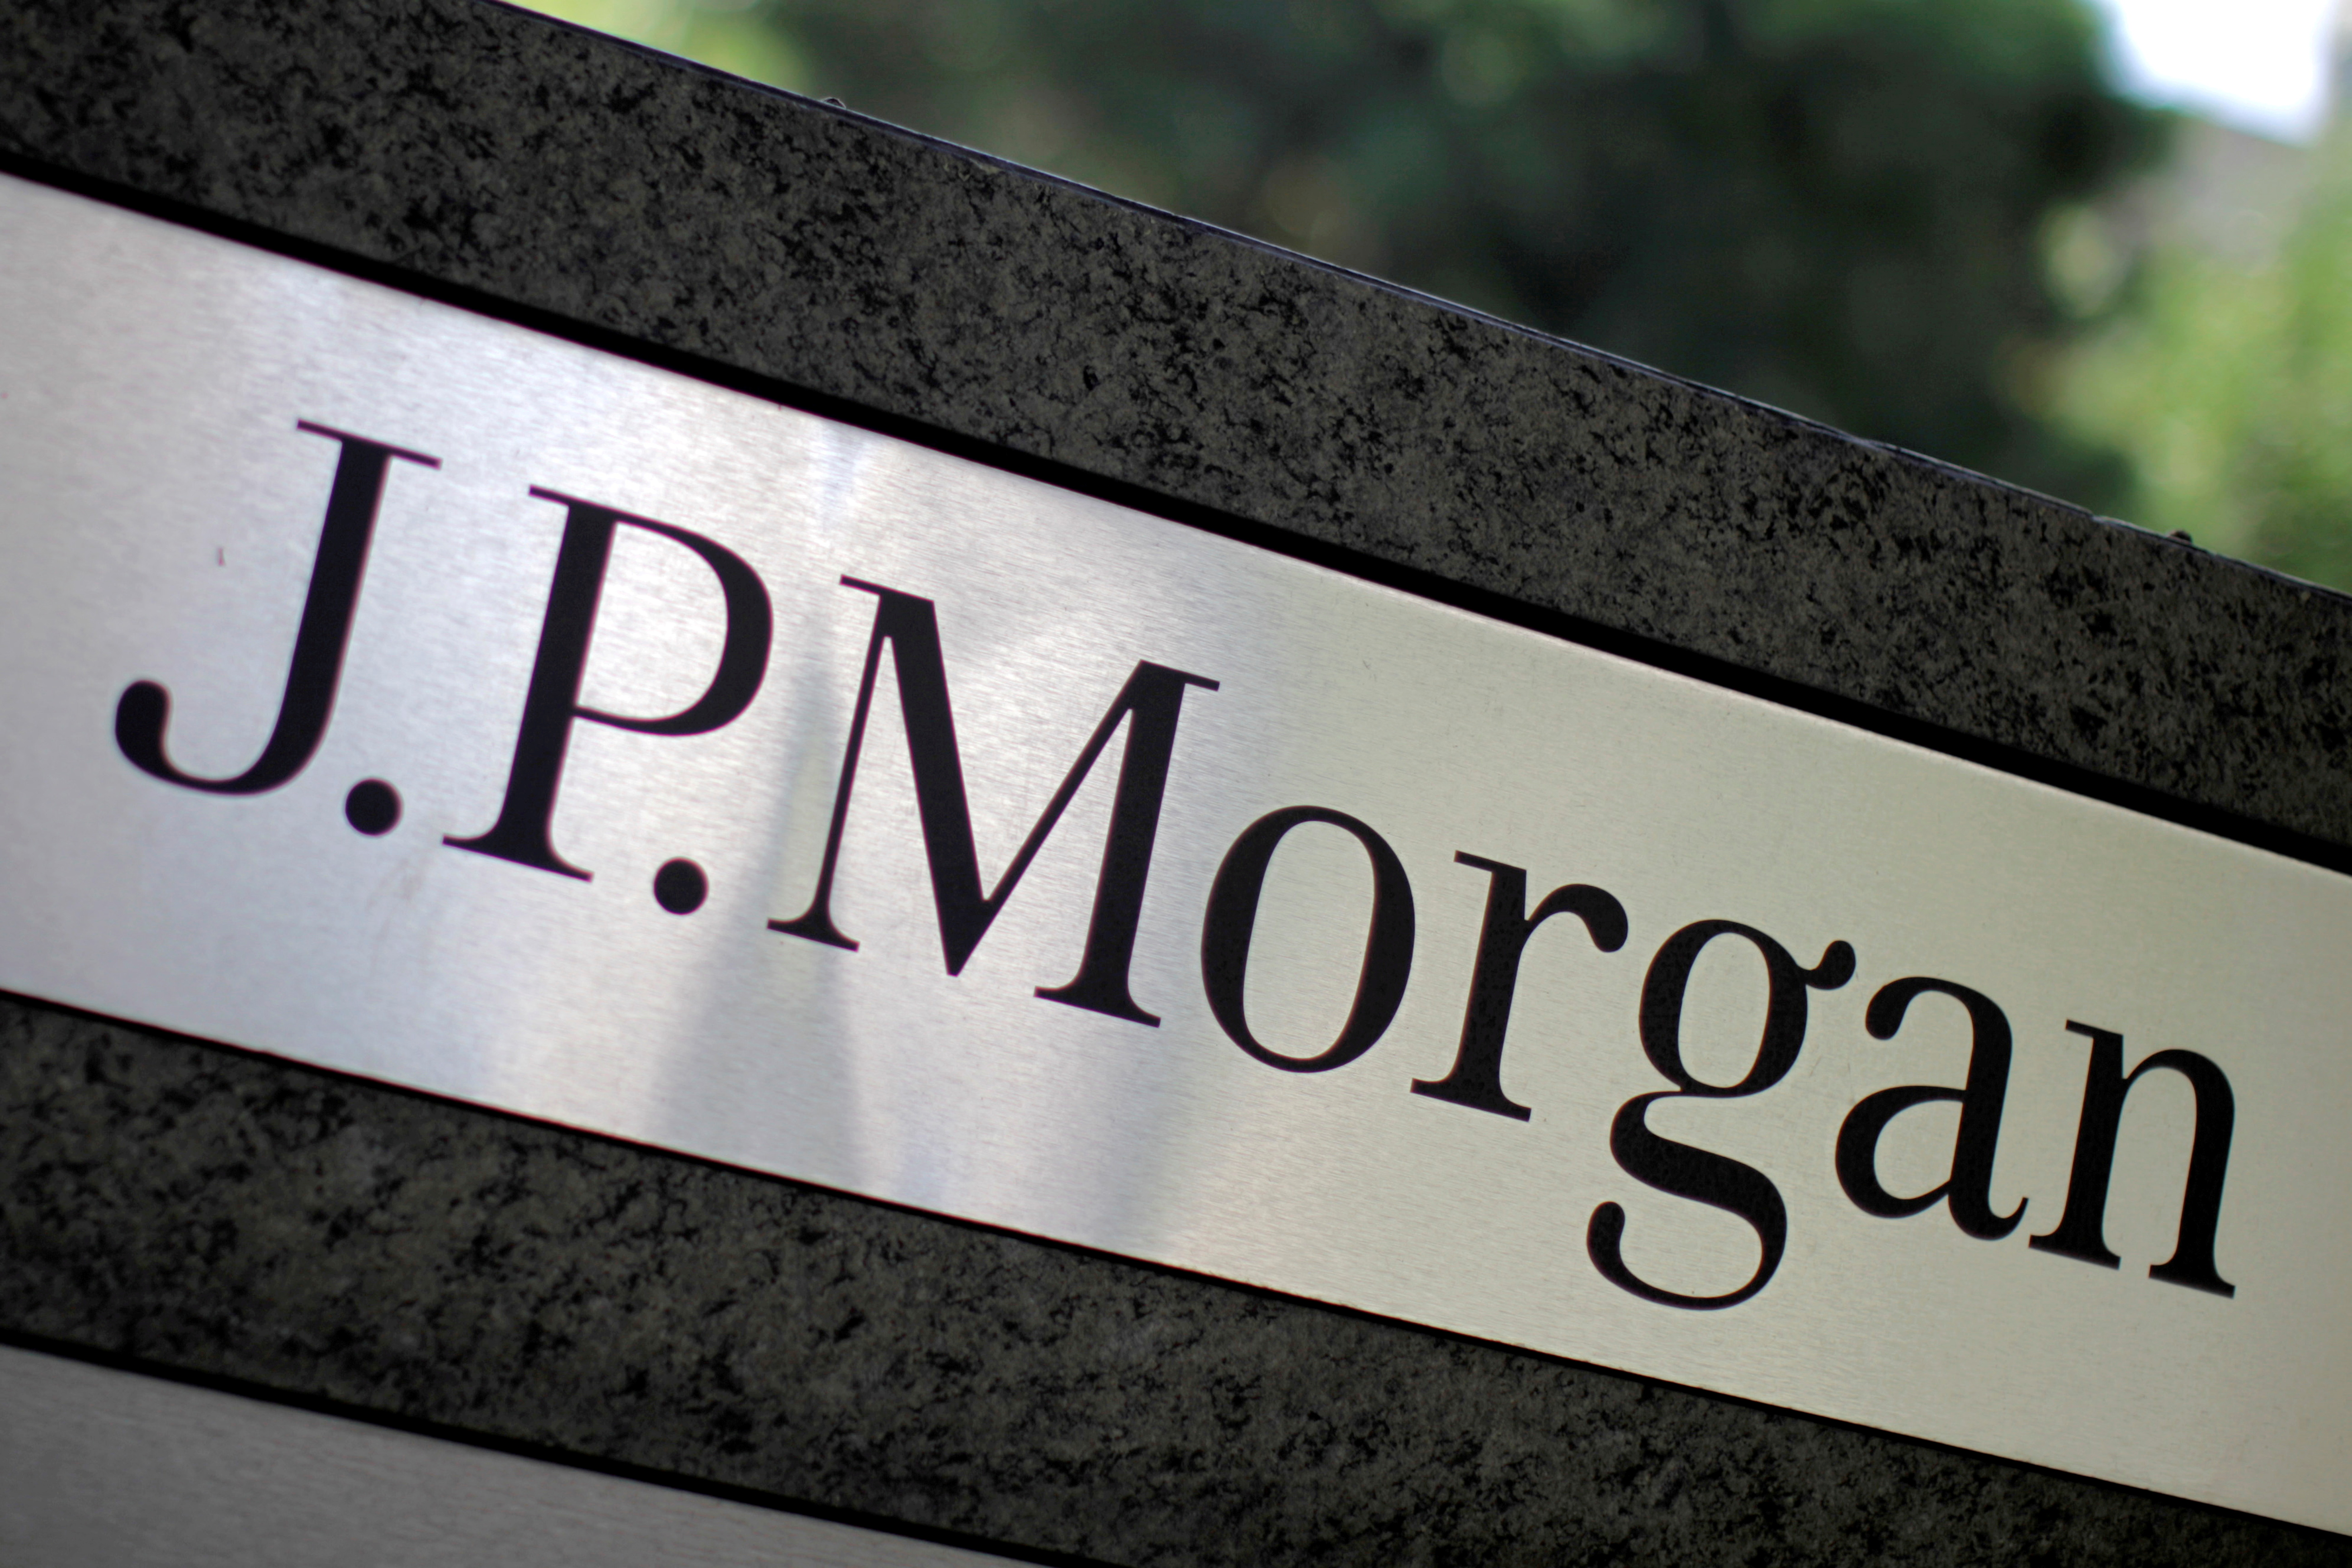 FILE PHOTO: The logo of Dow Jones Industrial Average stock market index listed company JPMorgan Chase (JPM) is seen in Los Angeles, California, United States, in this October 12, 2010 file photo. JPMorgan Chase & Co. owns Chase Commerical Bank and JPMorgan Investment Bank.  REUTERS/Lucy Nicholson